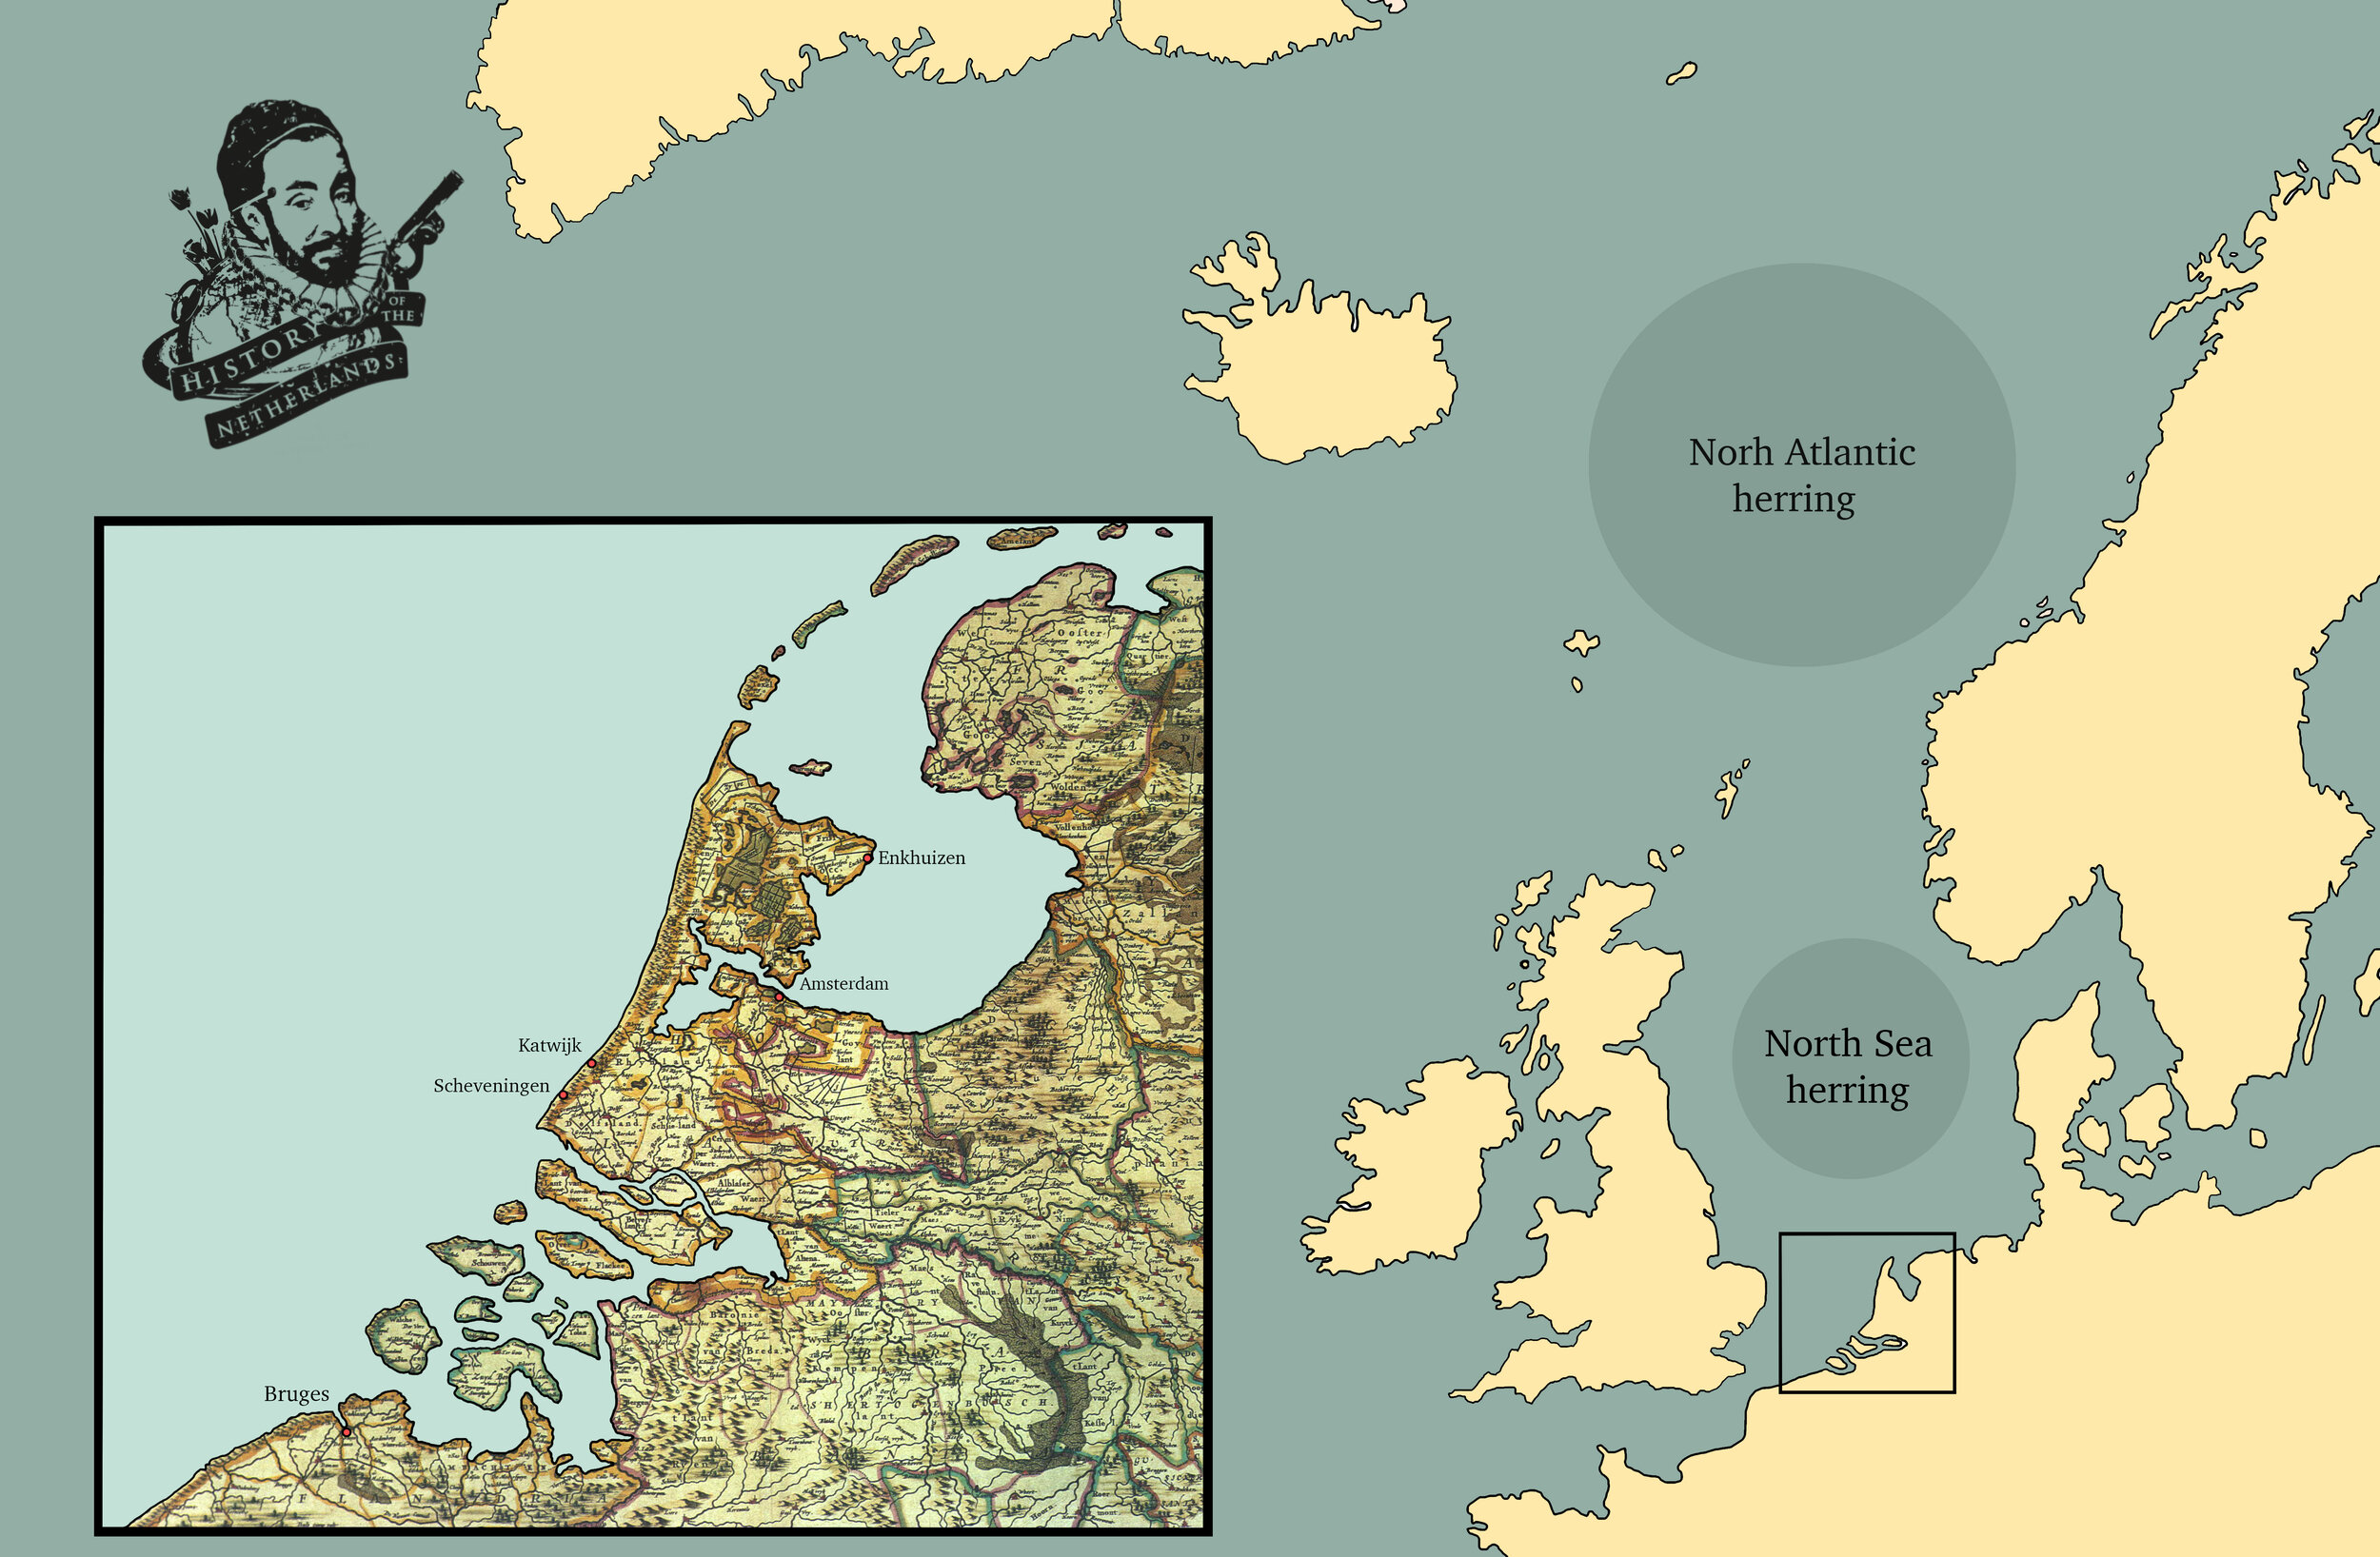 More herring could be found north in the Atlantic. Map by David Cenzer